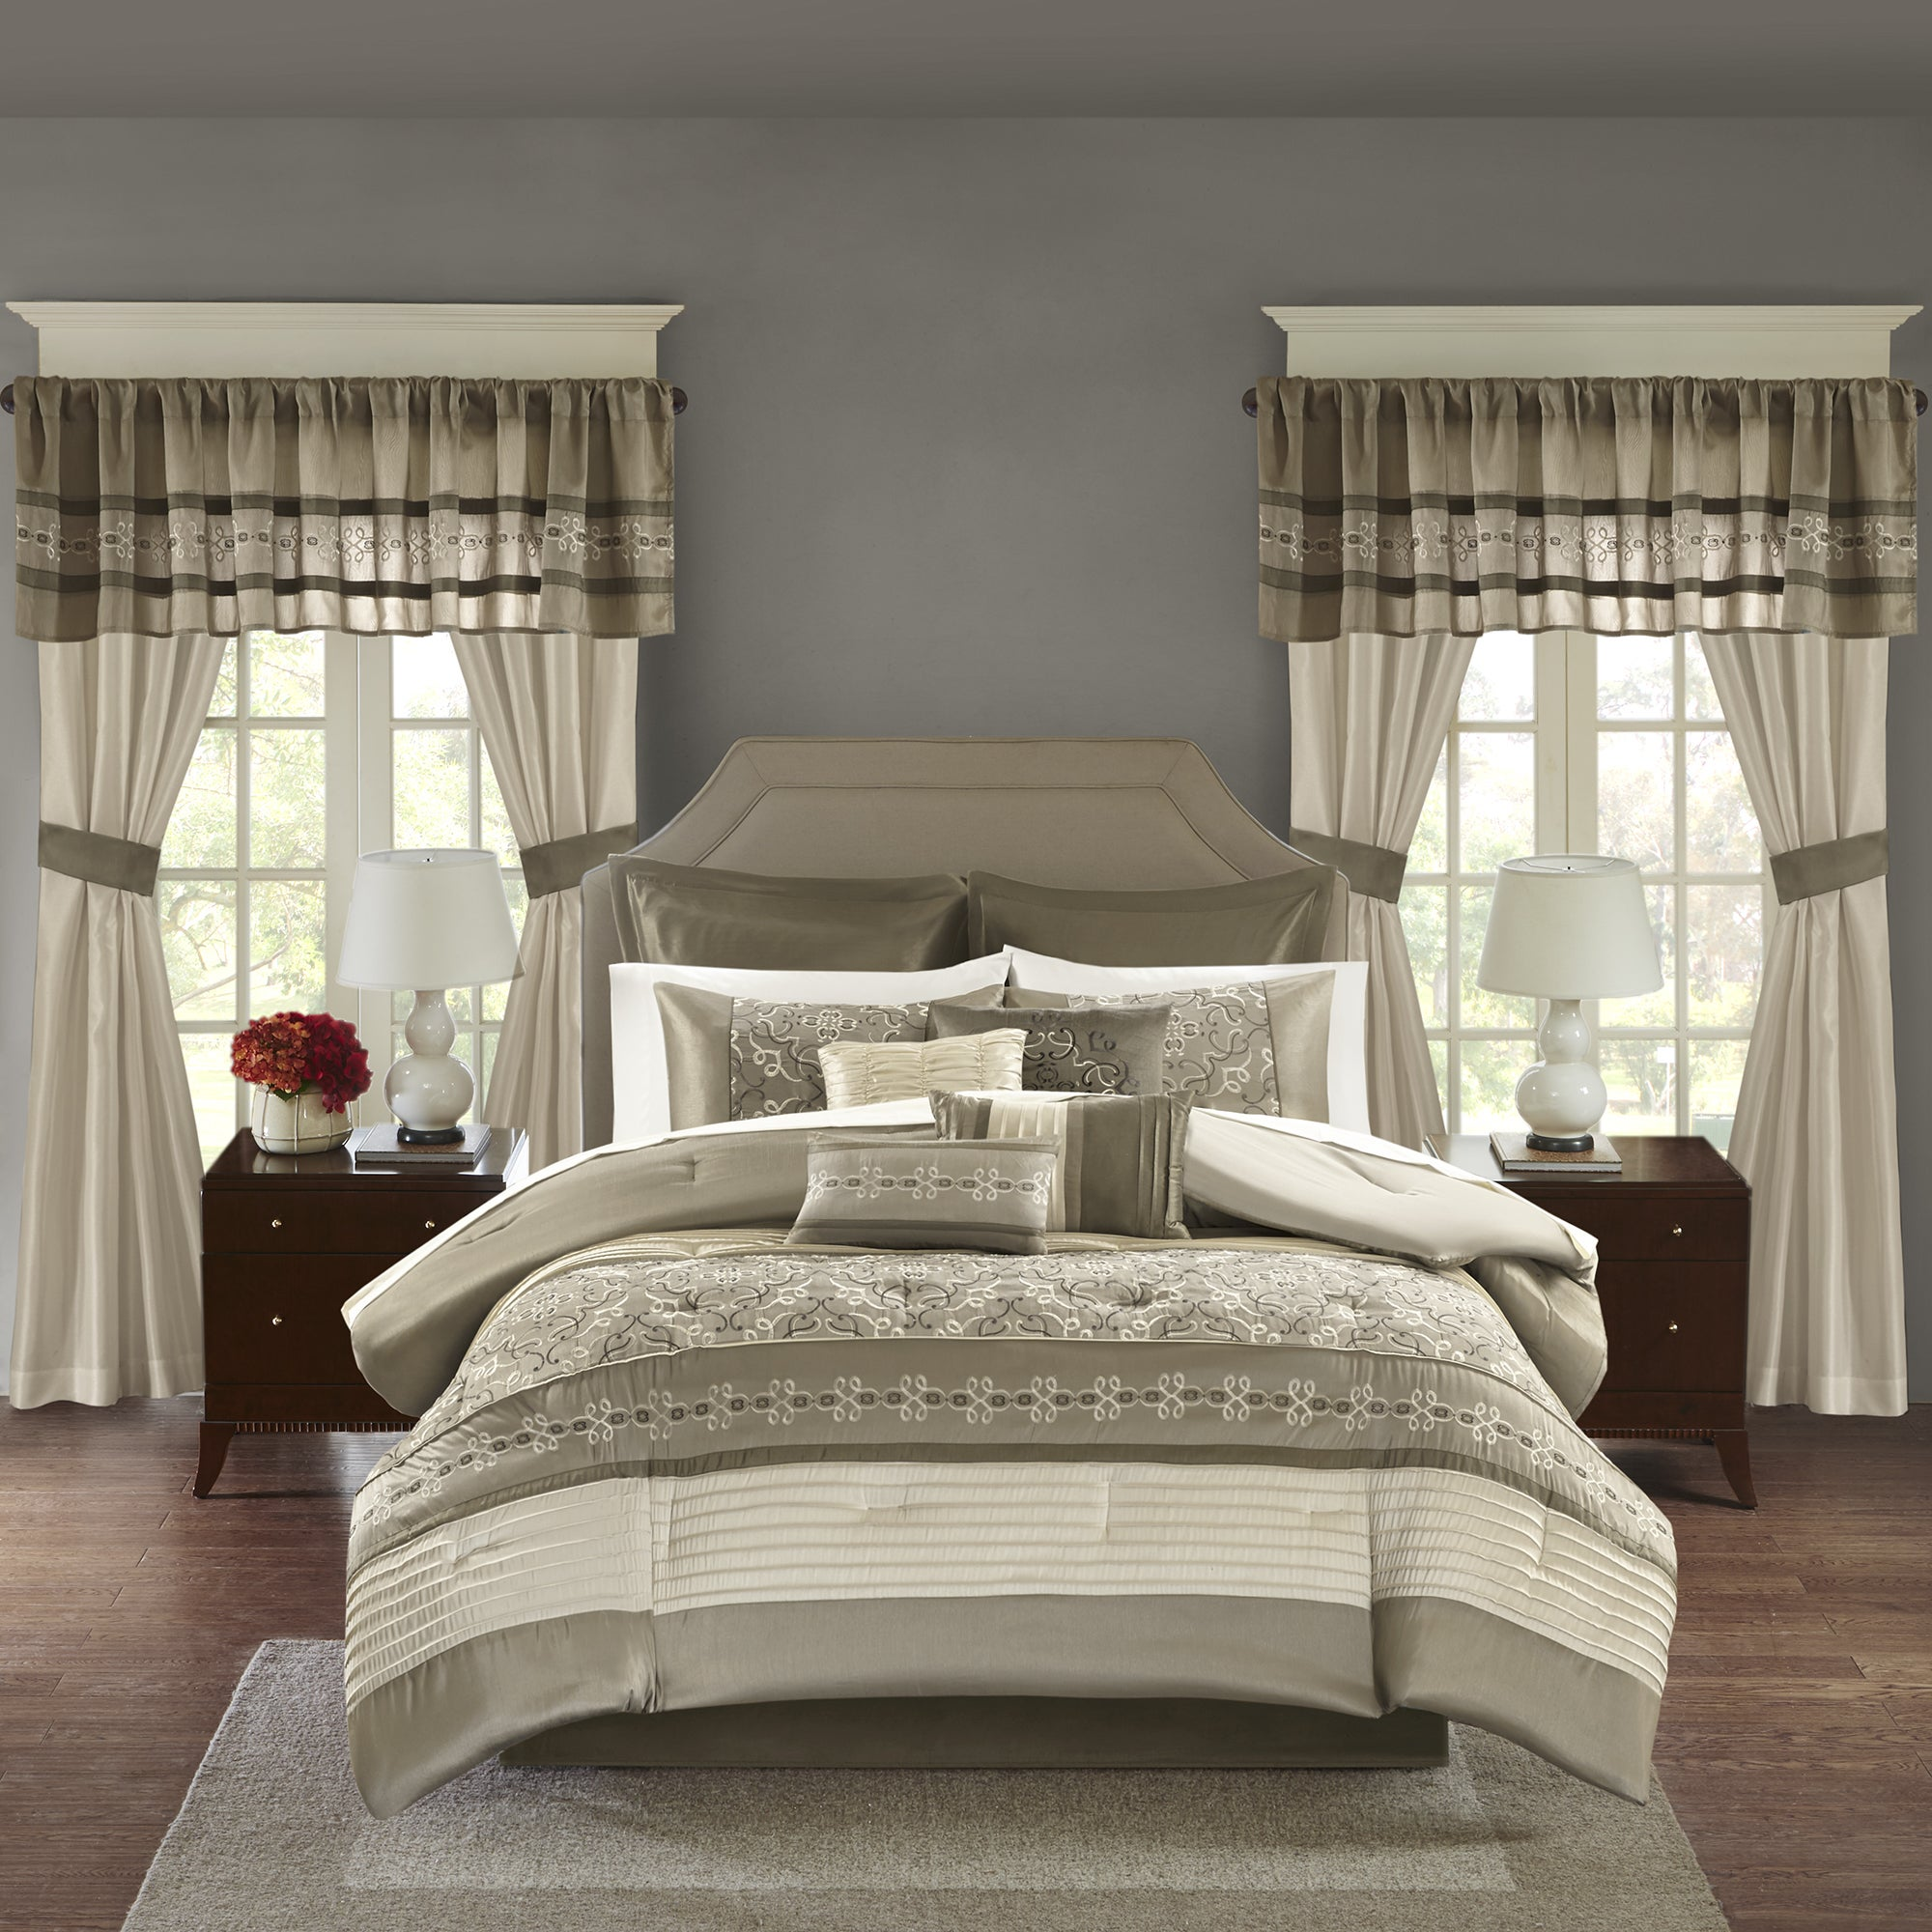 bed curtains unique chic ideas a shabby space resolution bag fresh opinion high for of in rooms idolza sale room kids